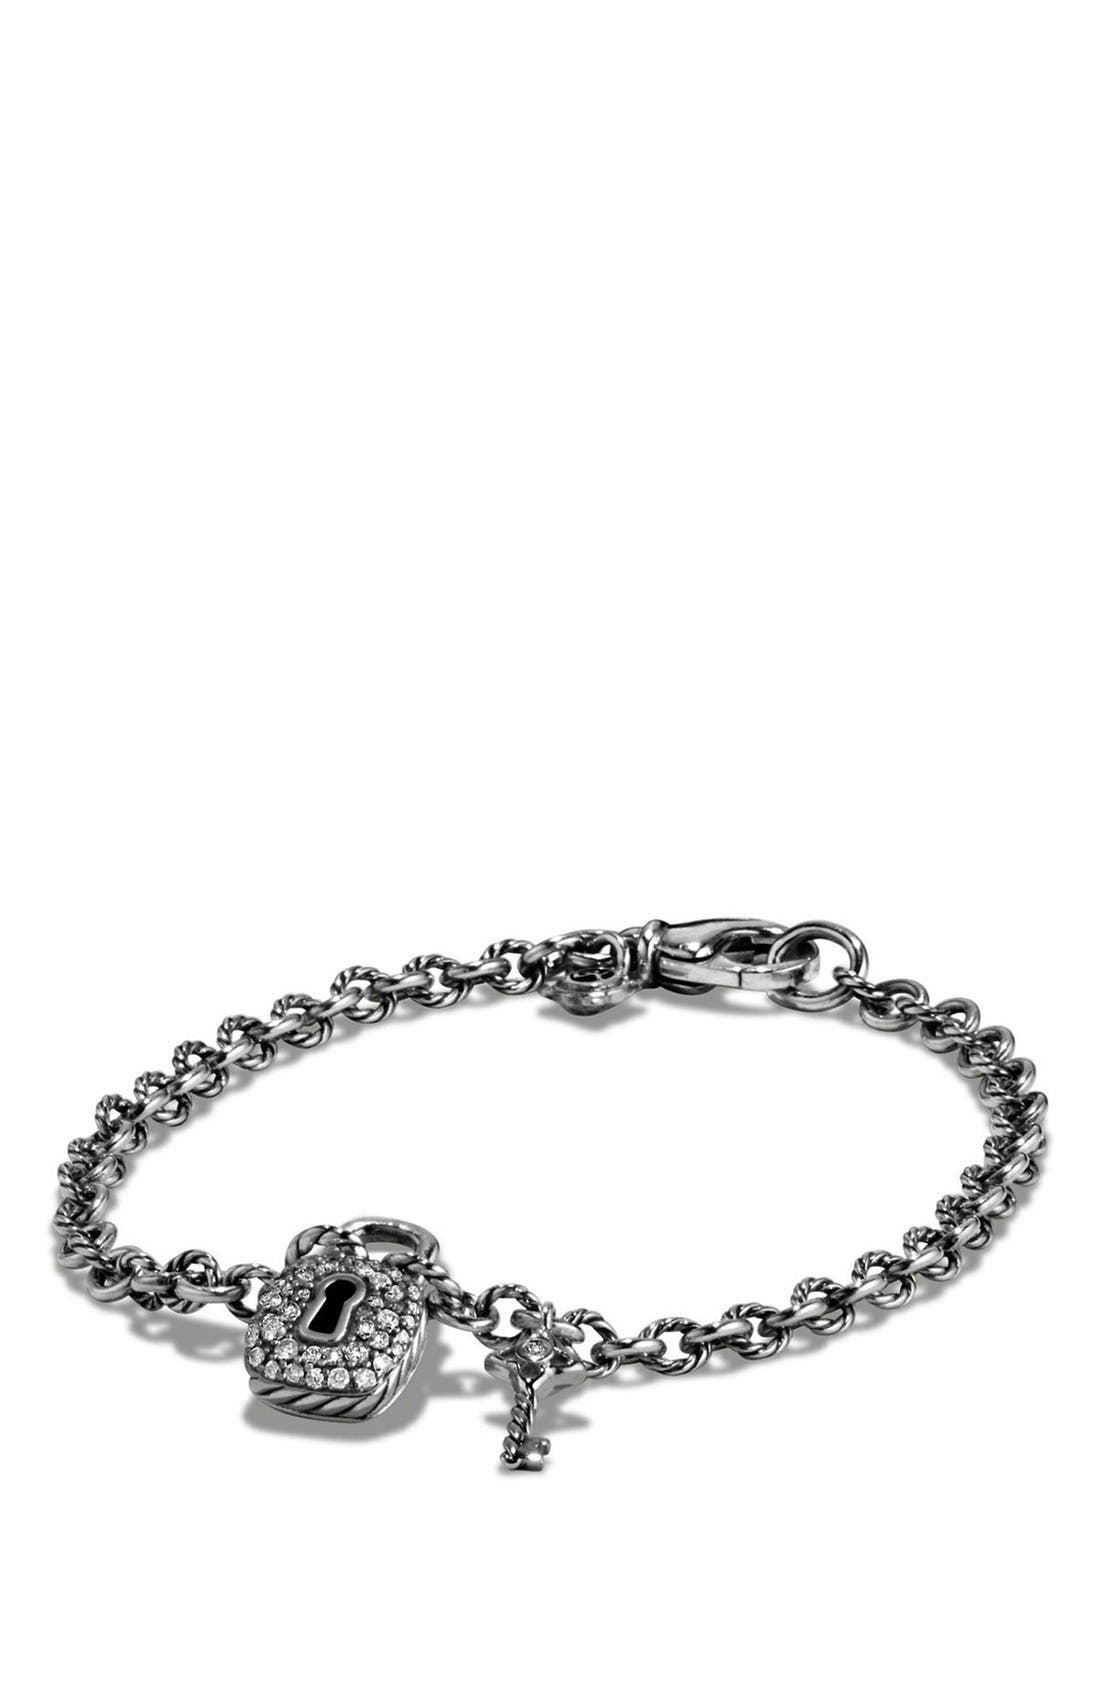 Main Image - David Yurman 'Cable Collectibles' Lock and Key Charm Bracelet with Diamonds